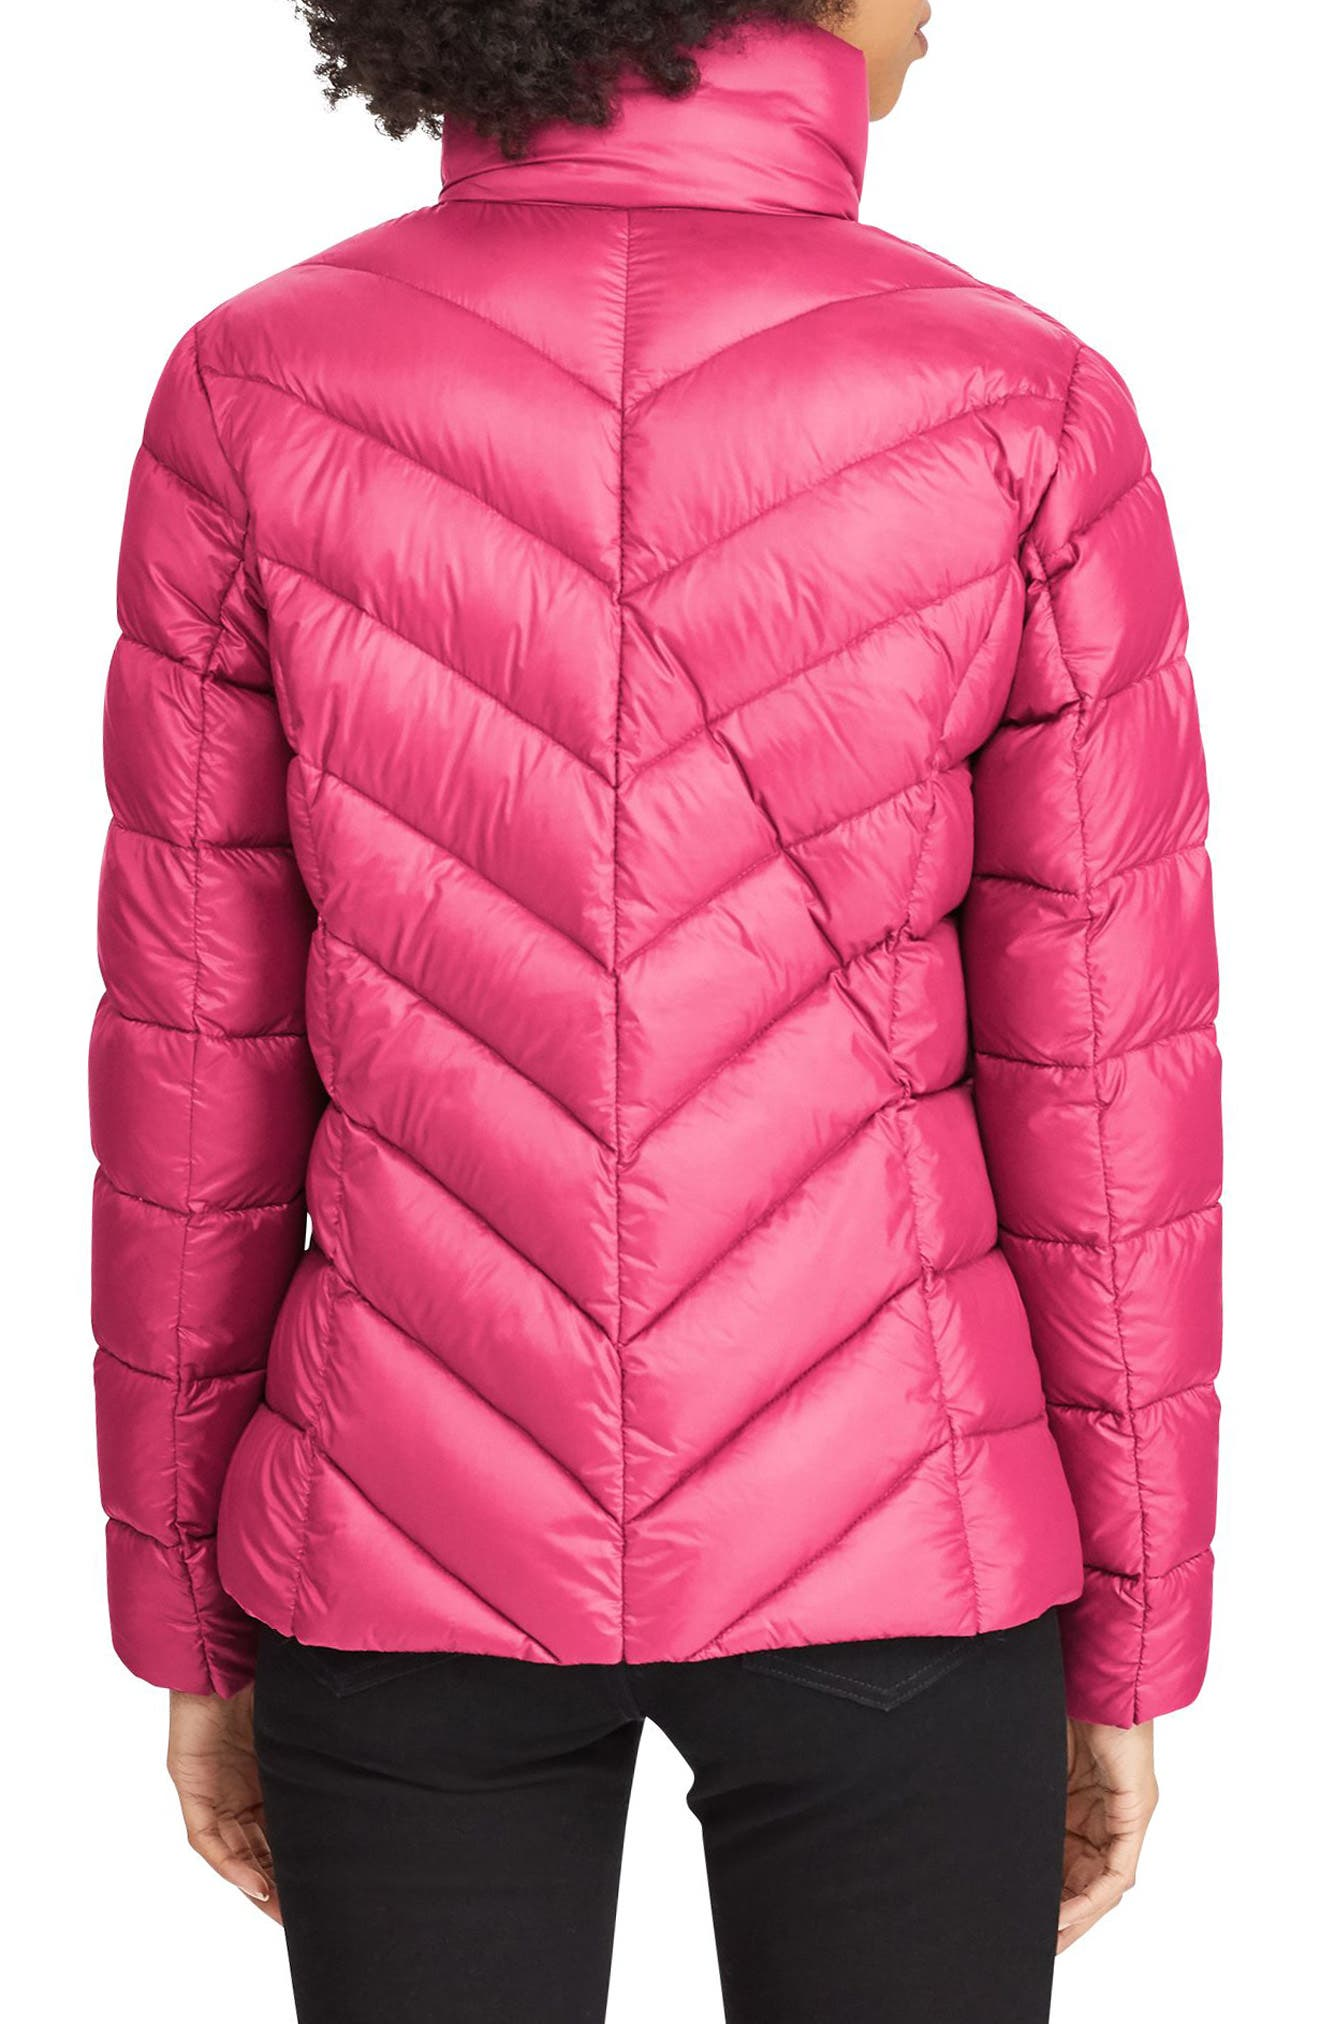 Chevron Quilted Packable Down Jacket,                             Alternate thumbnail 2, color,                             BERRY